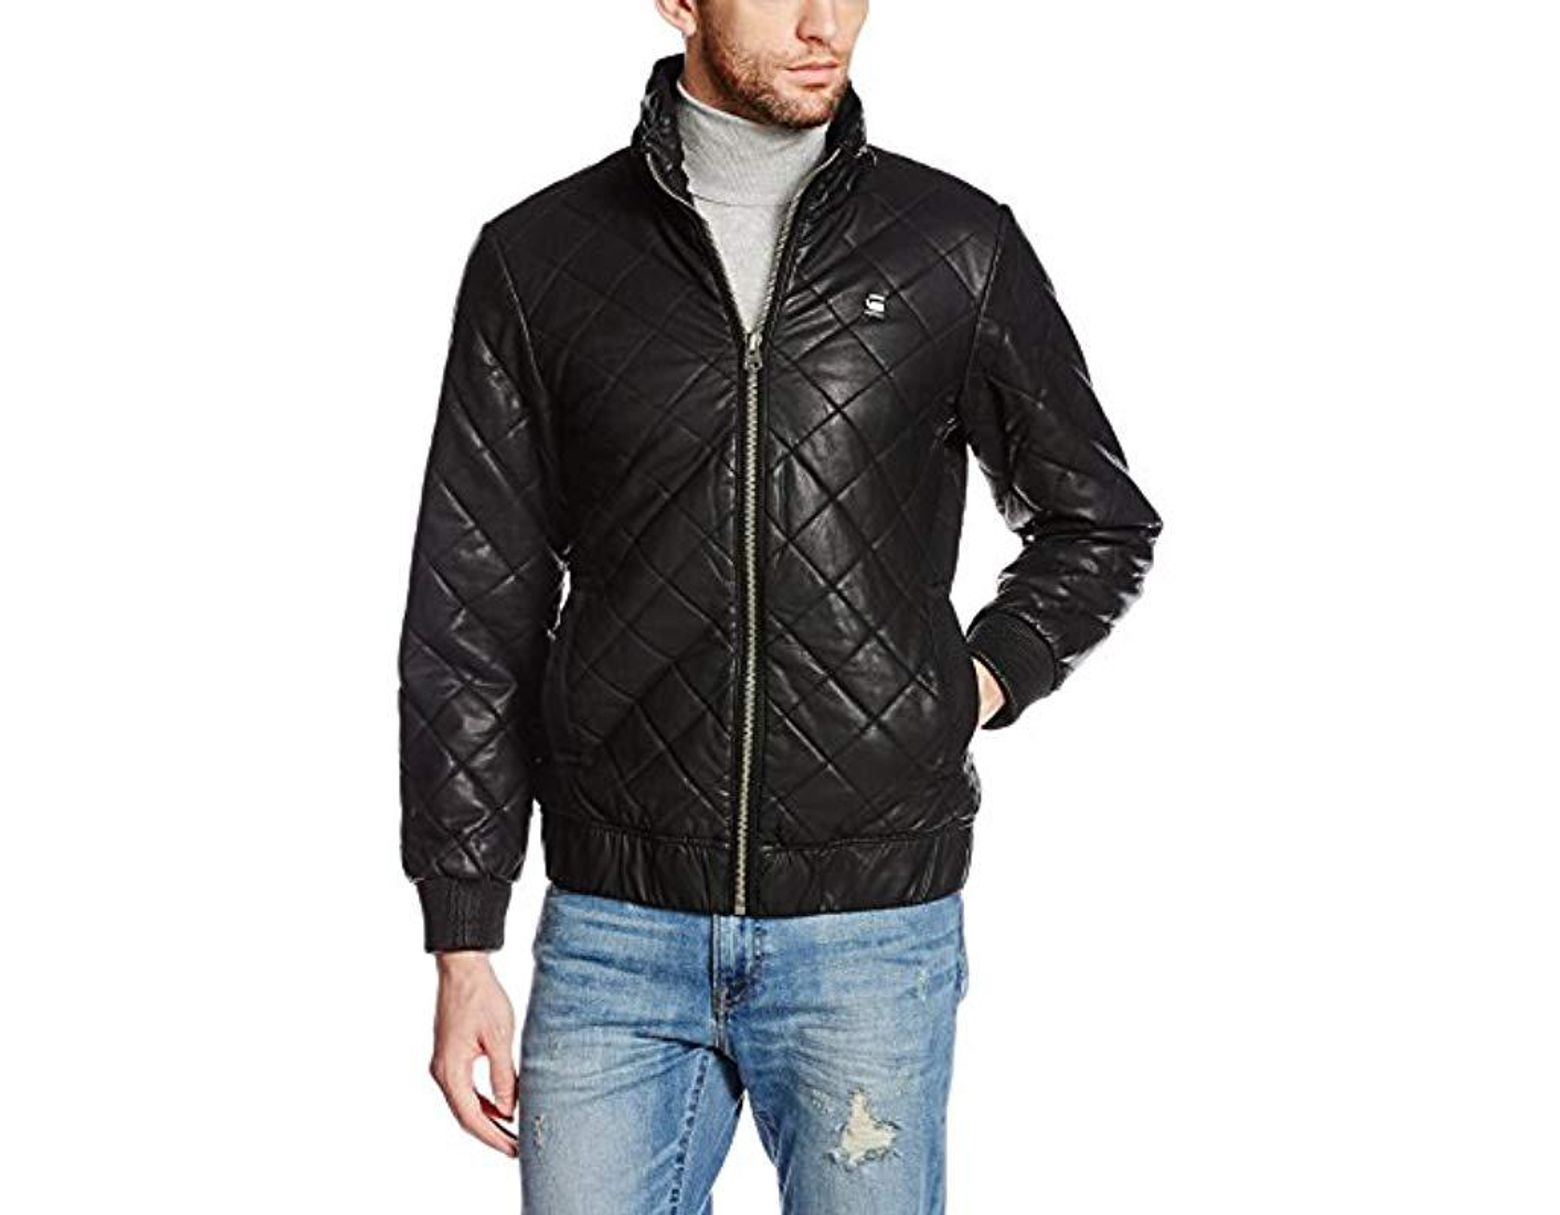 6e10956df Men's Black Meefic Quilted Faux Leather Overshirt Jacket